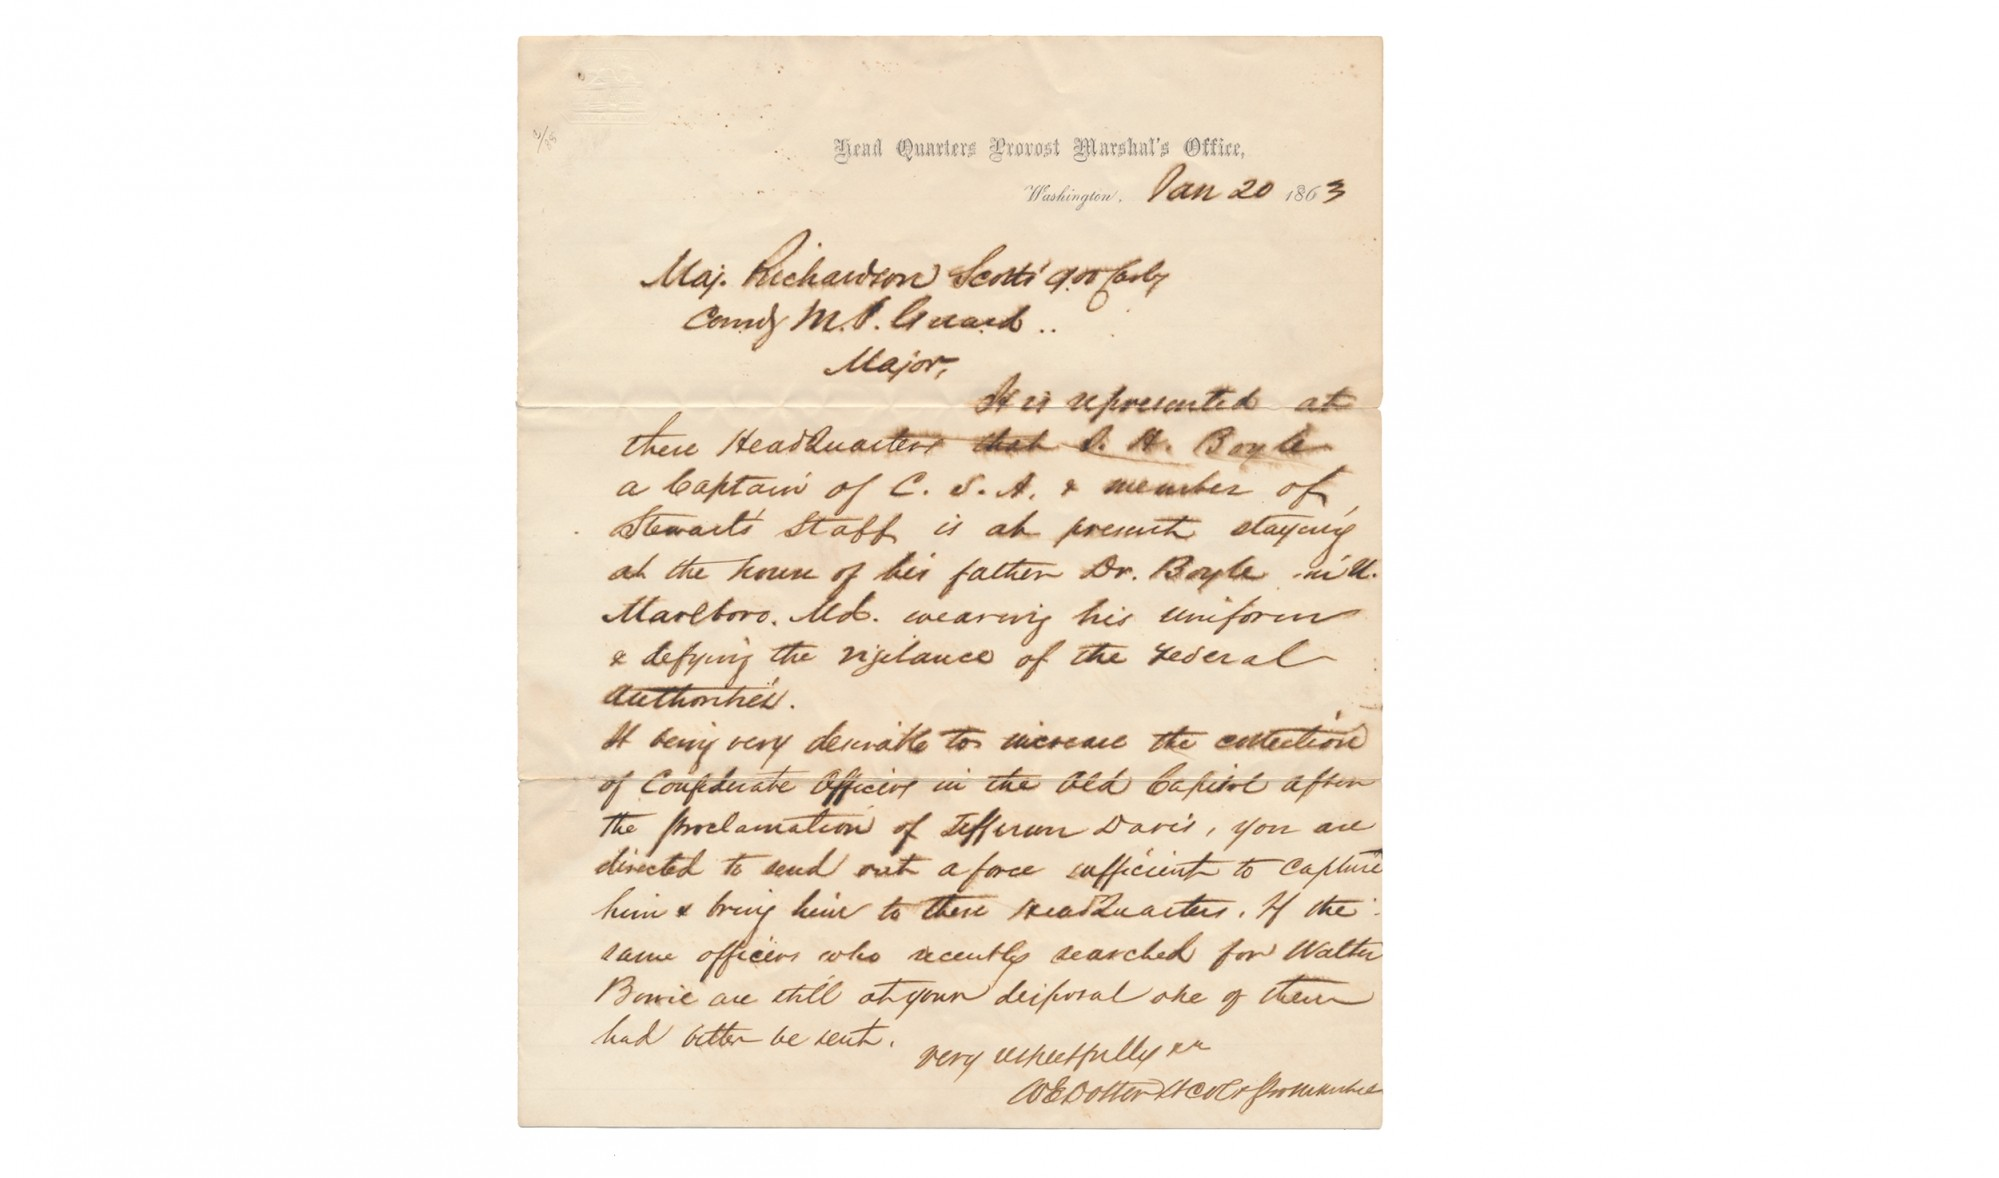 1863 ALS FROM LT. COL. WILLIAM E. DOSTER TO MAJ. G.W. RICHARDSON ORDERING THE CAPTURE OF A SUSPECTED CONFEDERATE SPY